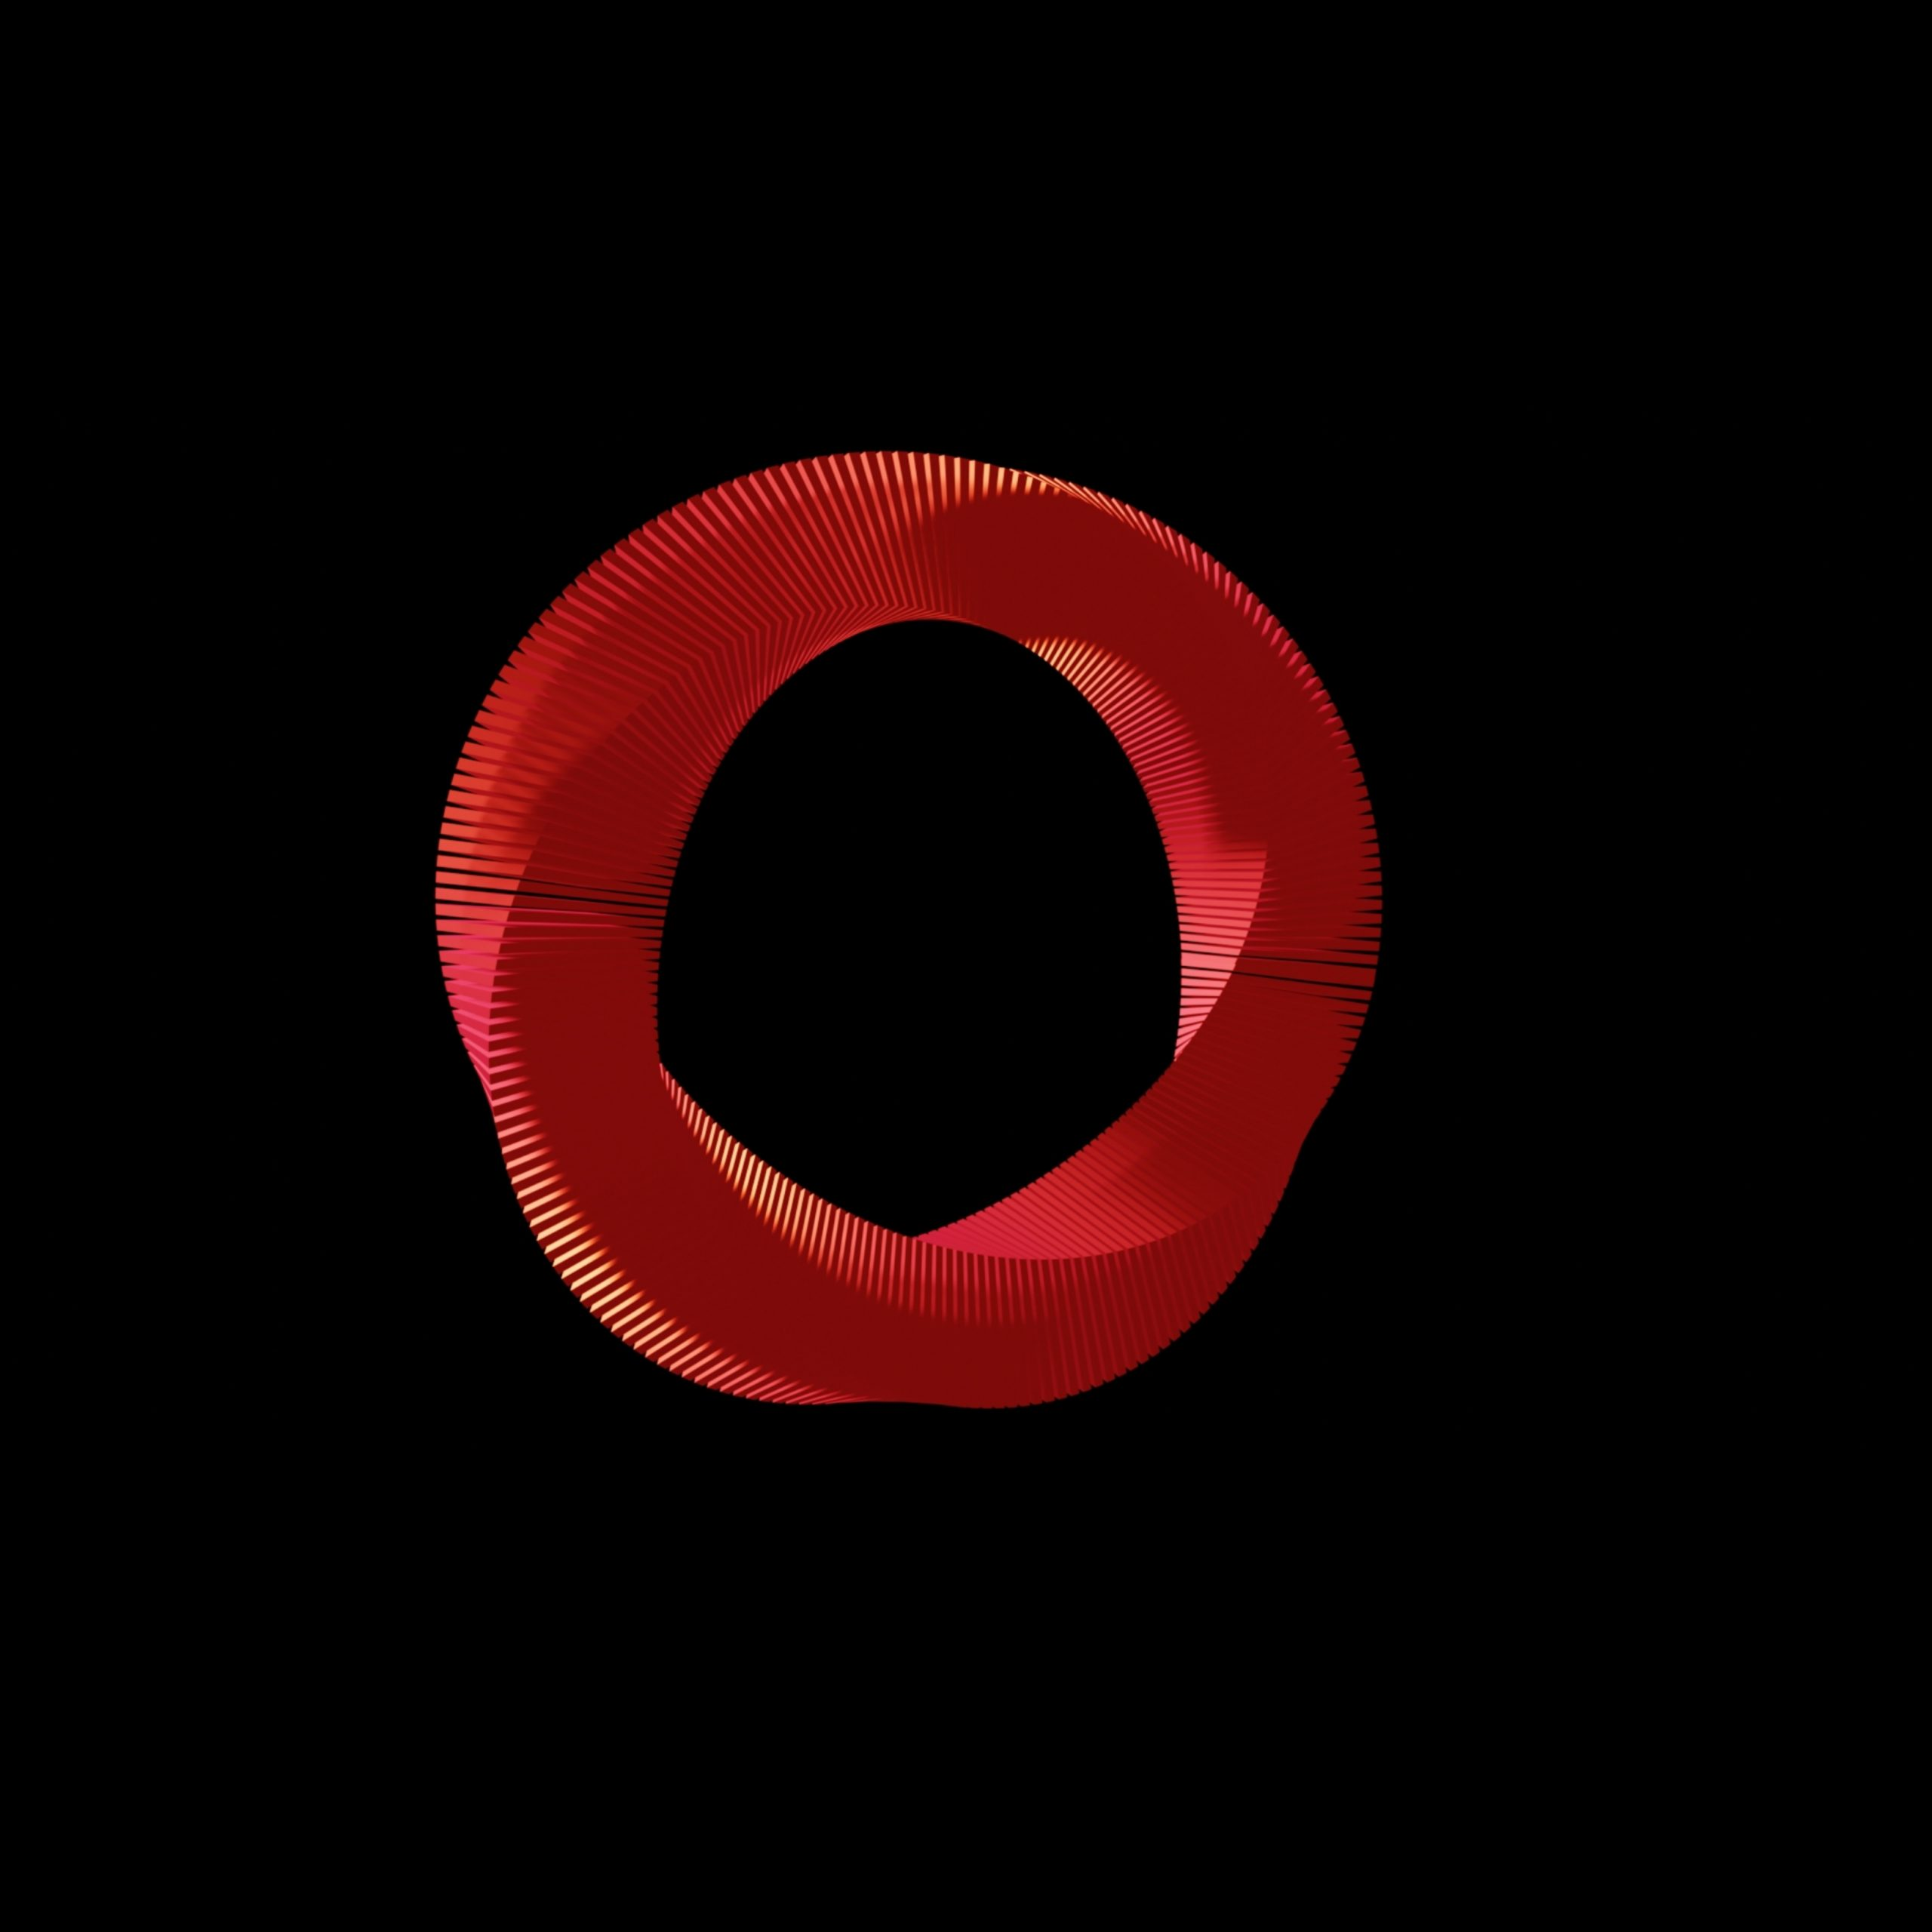 Red Ring illustration